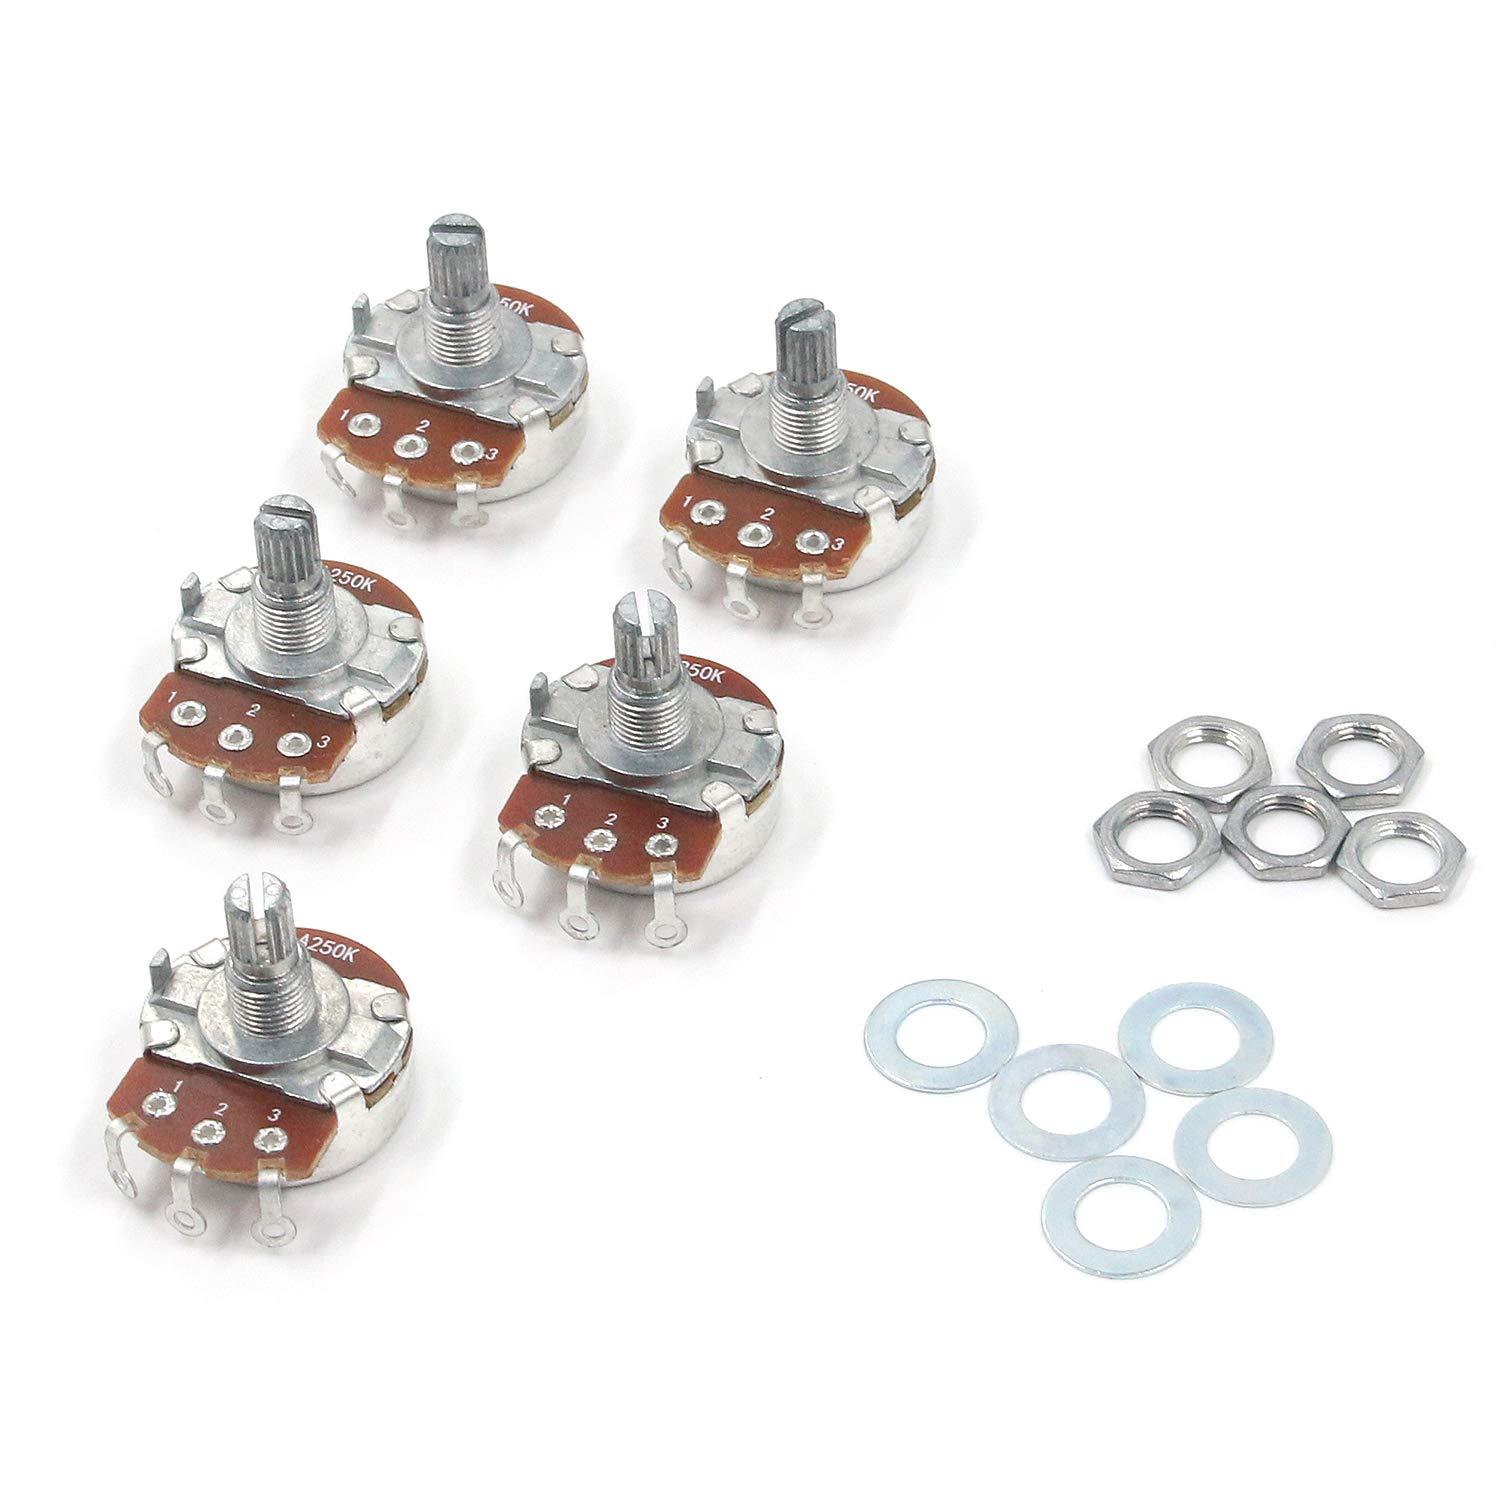 with Nut and Washer for Electric Bass or Guitar Geesatis 5 PCS Split Shaft Audio Taper Low Friction Potentiometers B250K Silver Short Shaft Audio Potentiometers